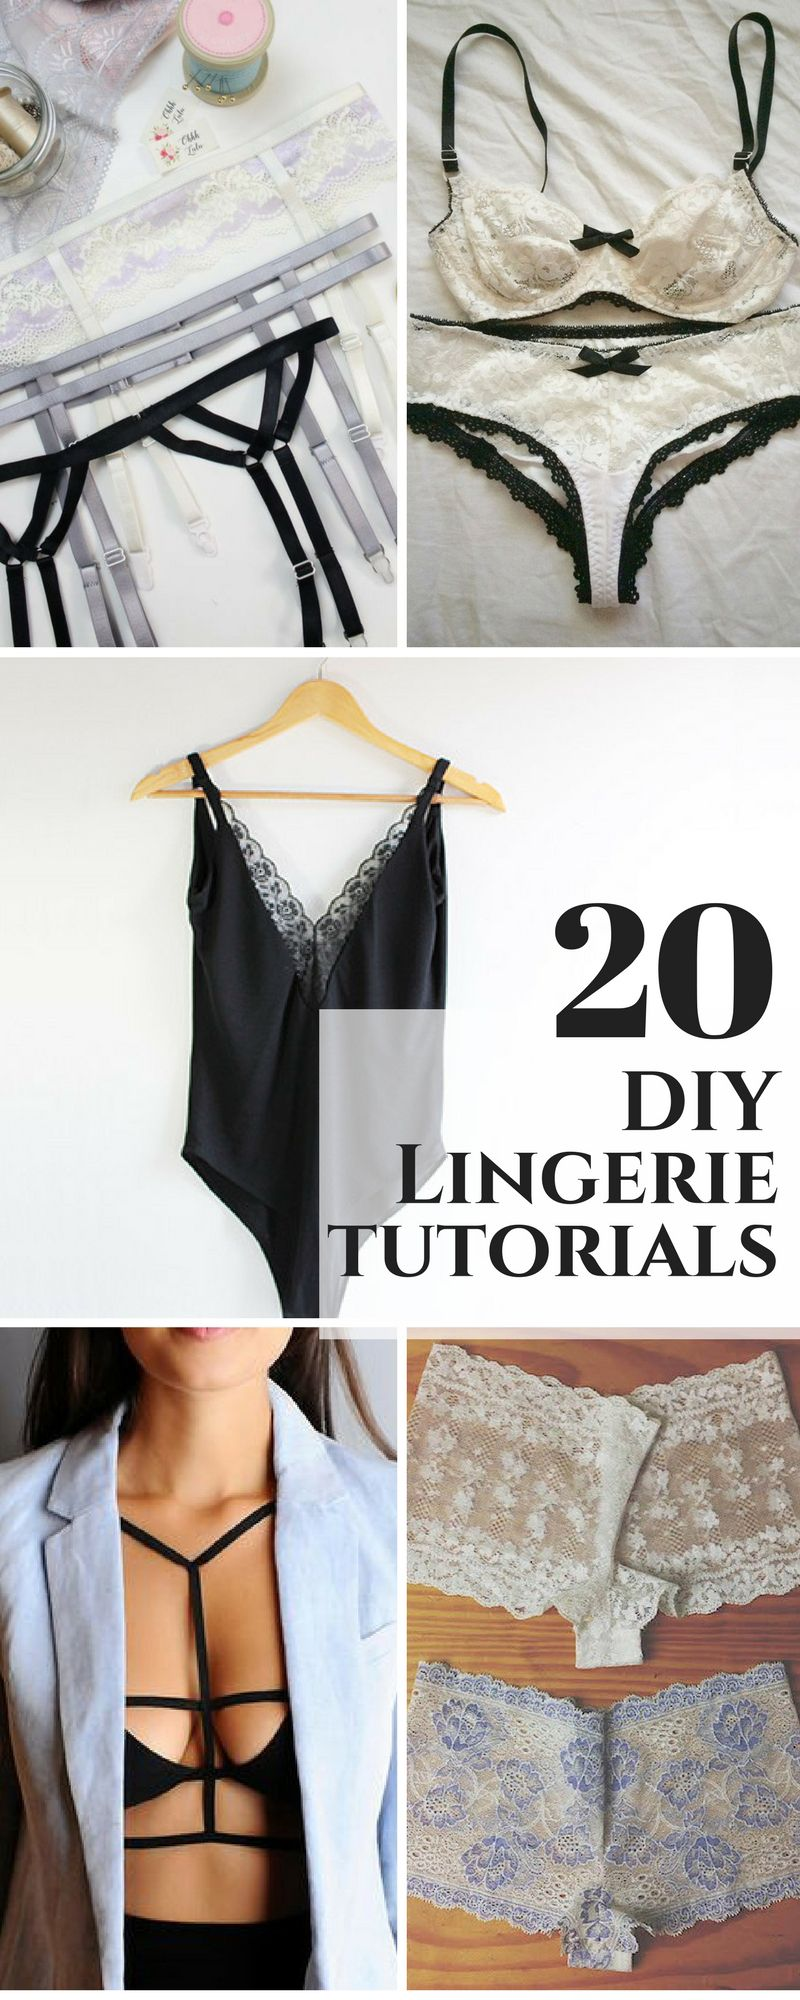 20 DIY Lingerie, Bras, and Panties to Try in 2018 - Creative Fashion Blog